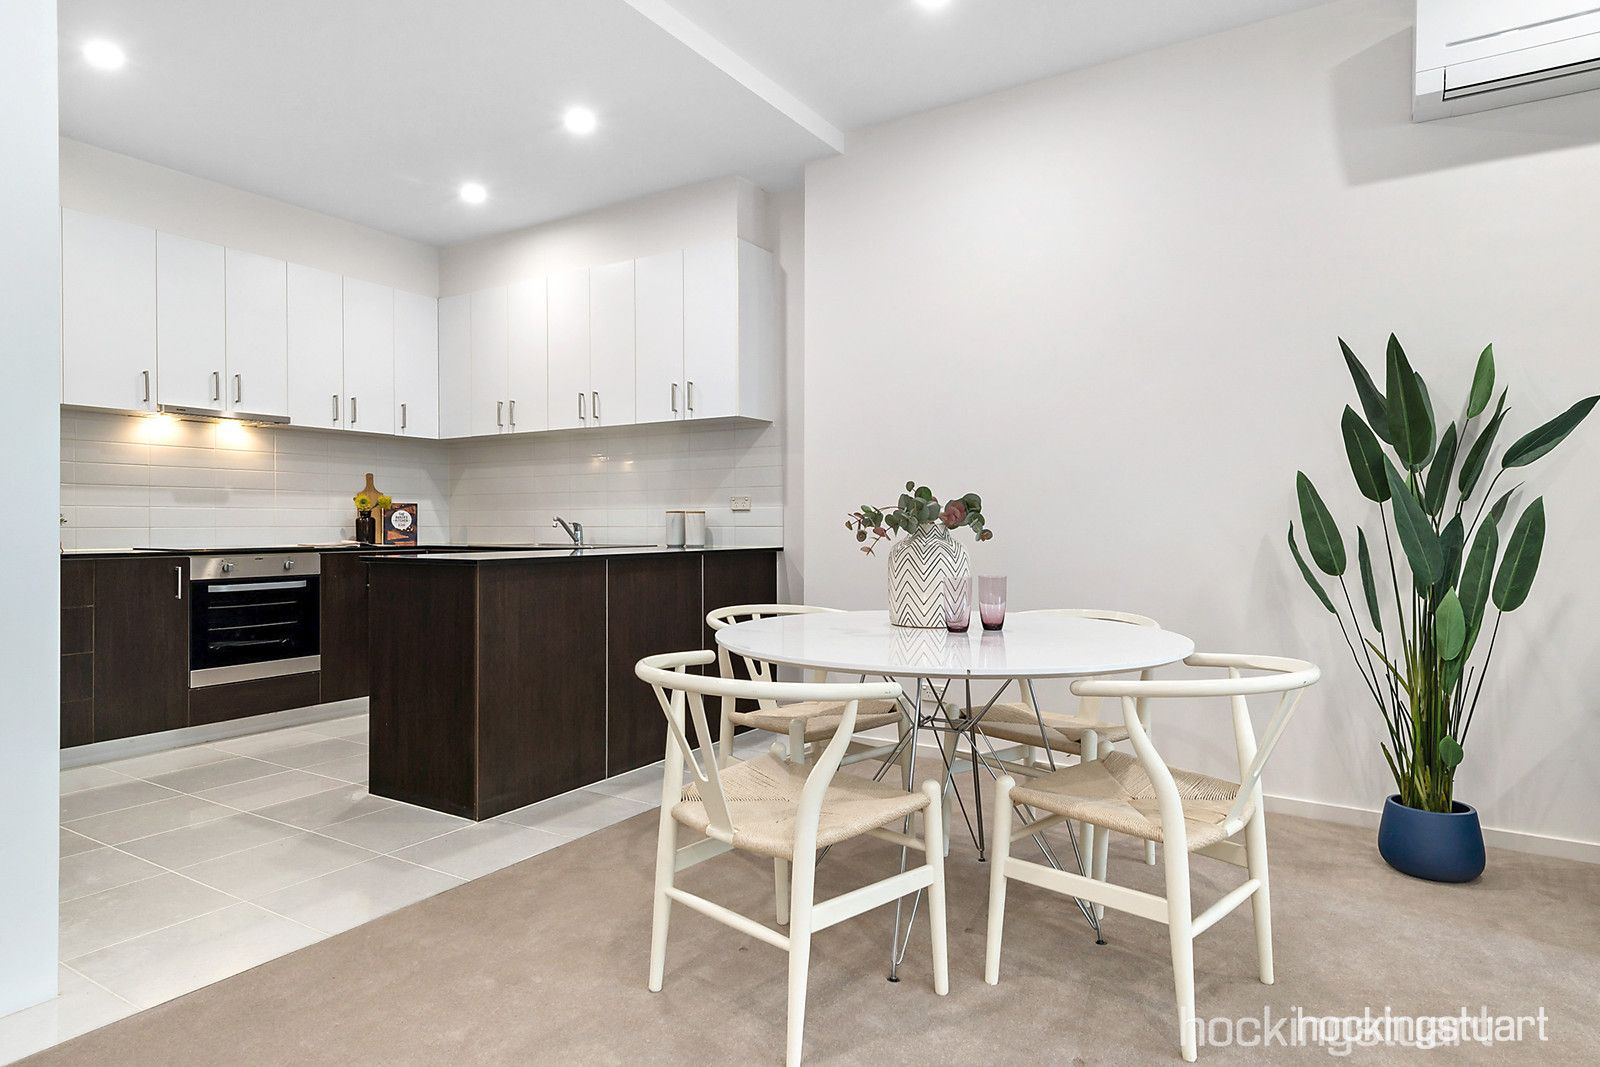 15/1 Villiers Street, North Melbourne VIC 3051, Image 2